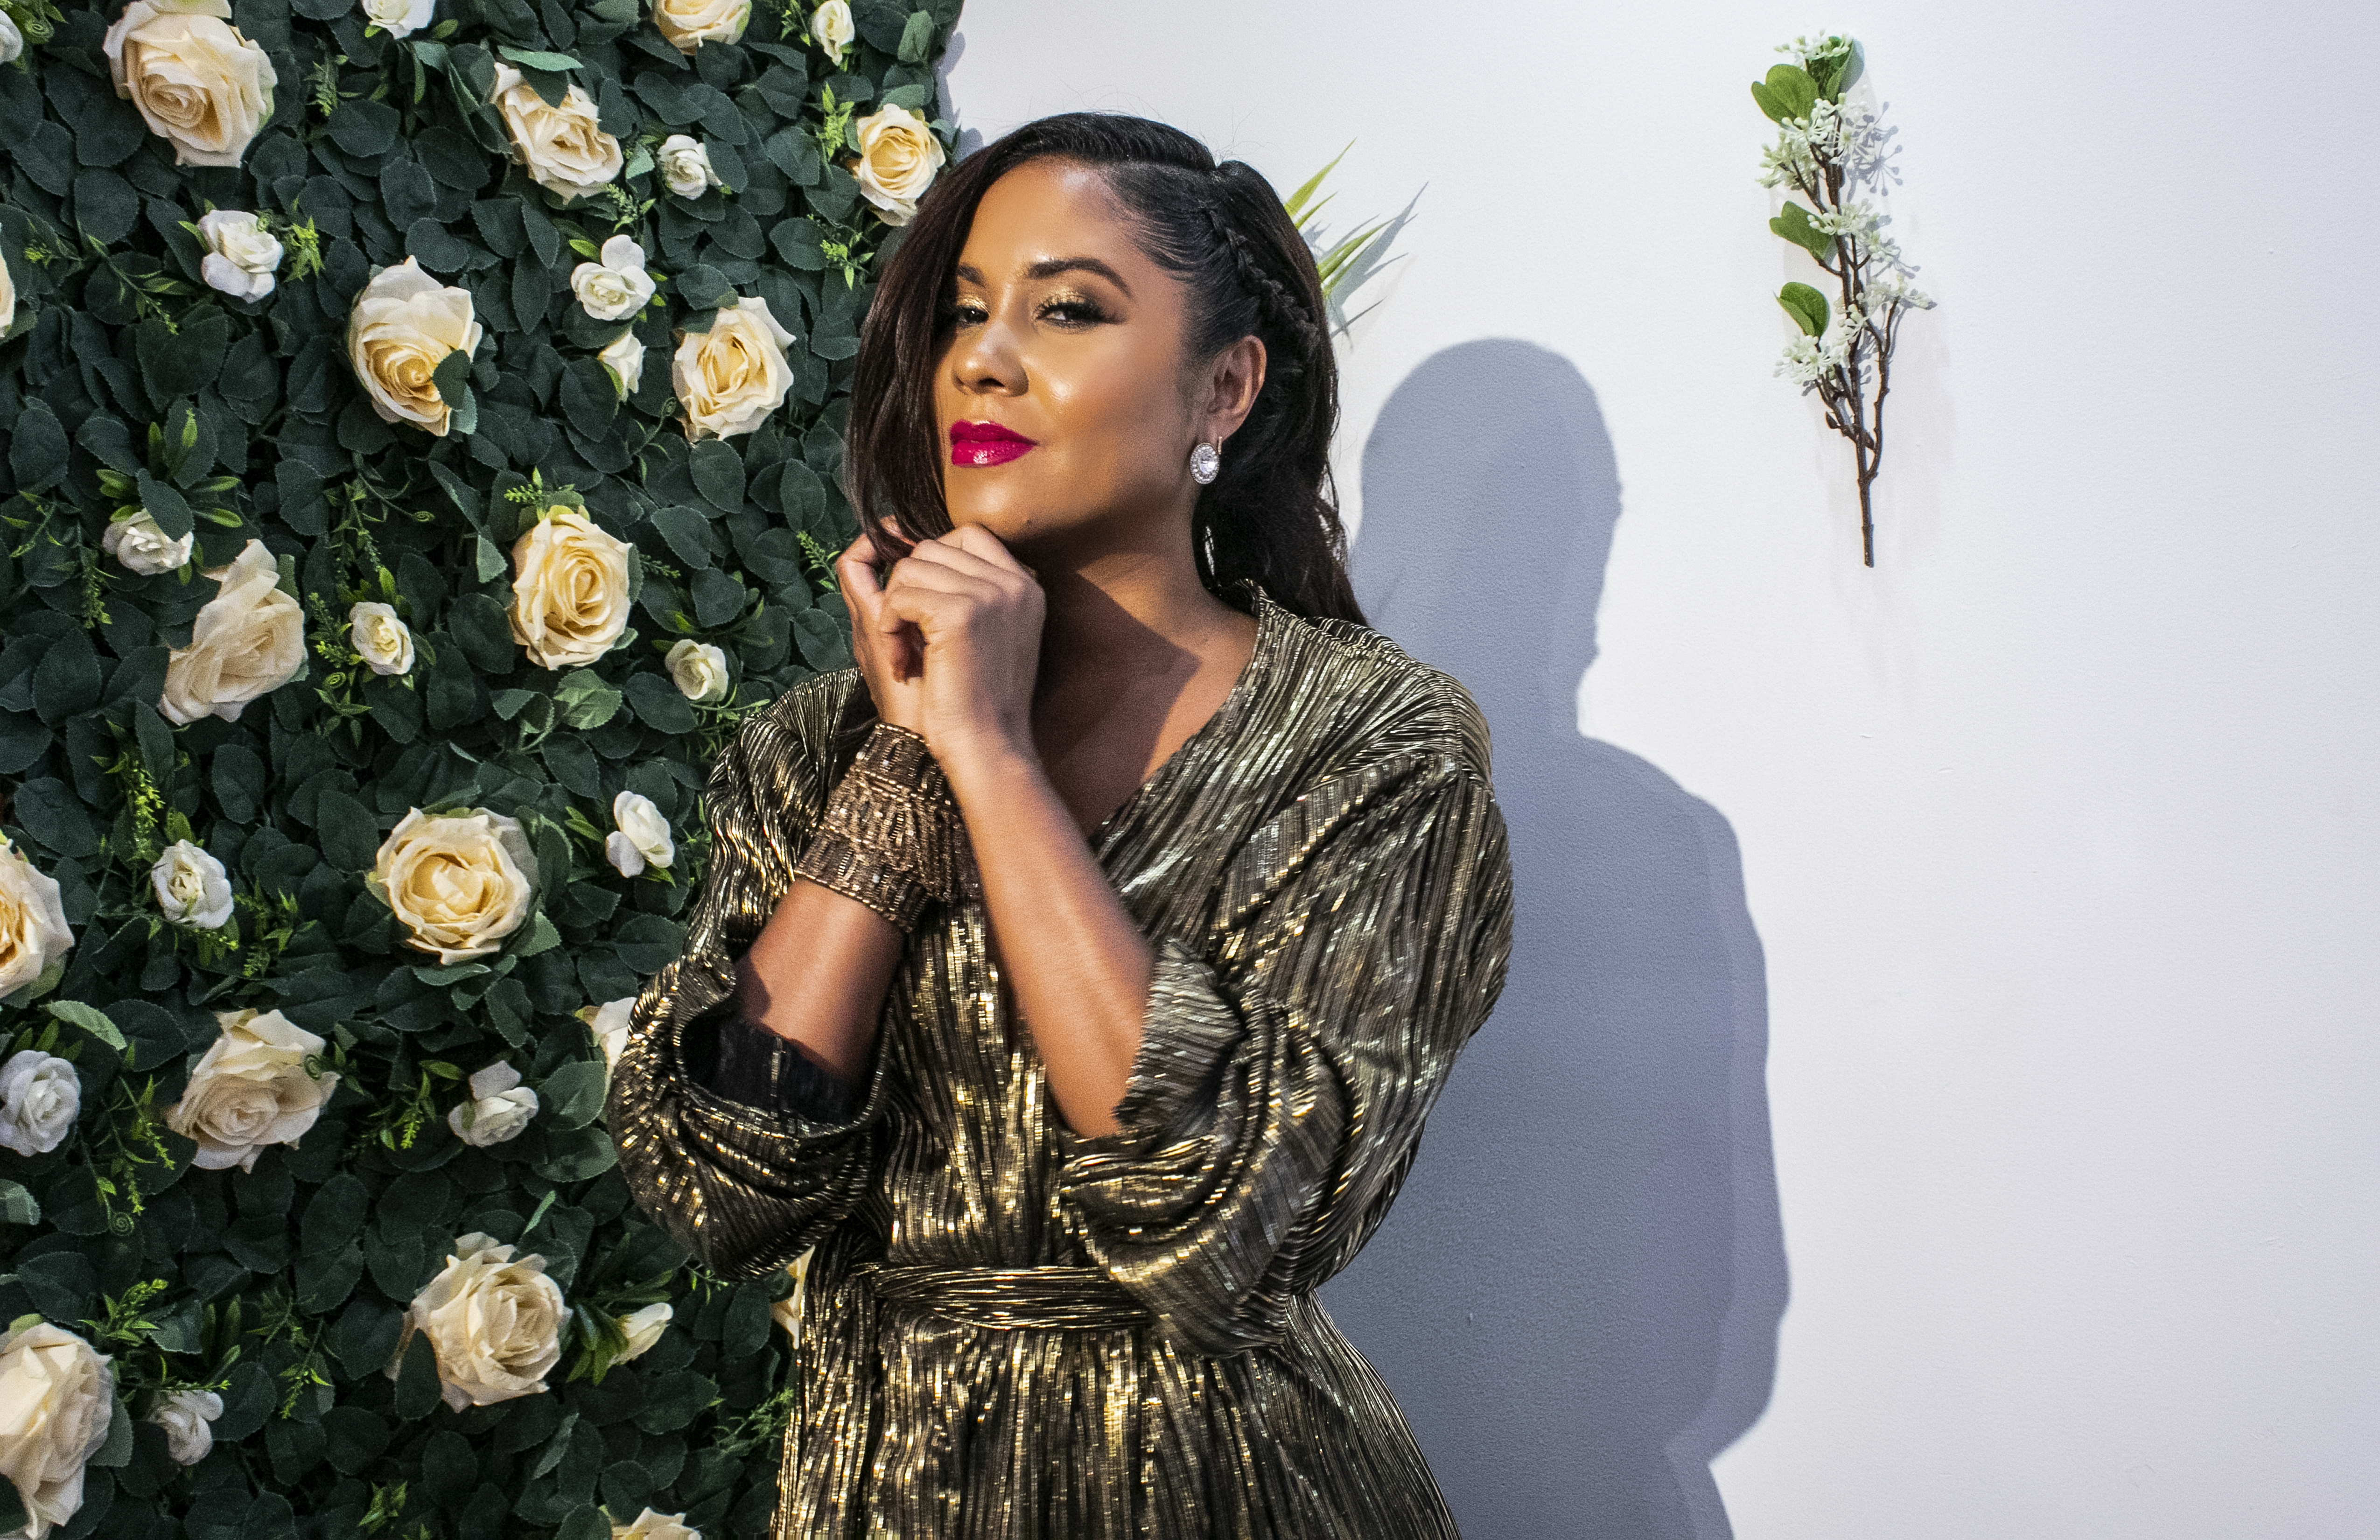 Angela Yee Net Worth, Salary, and Nationality